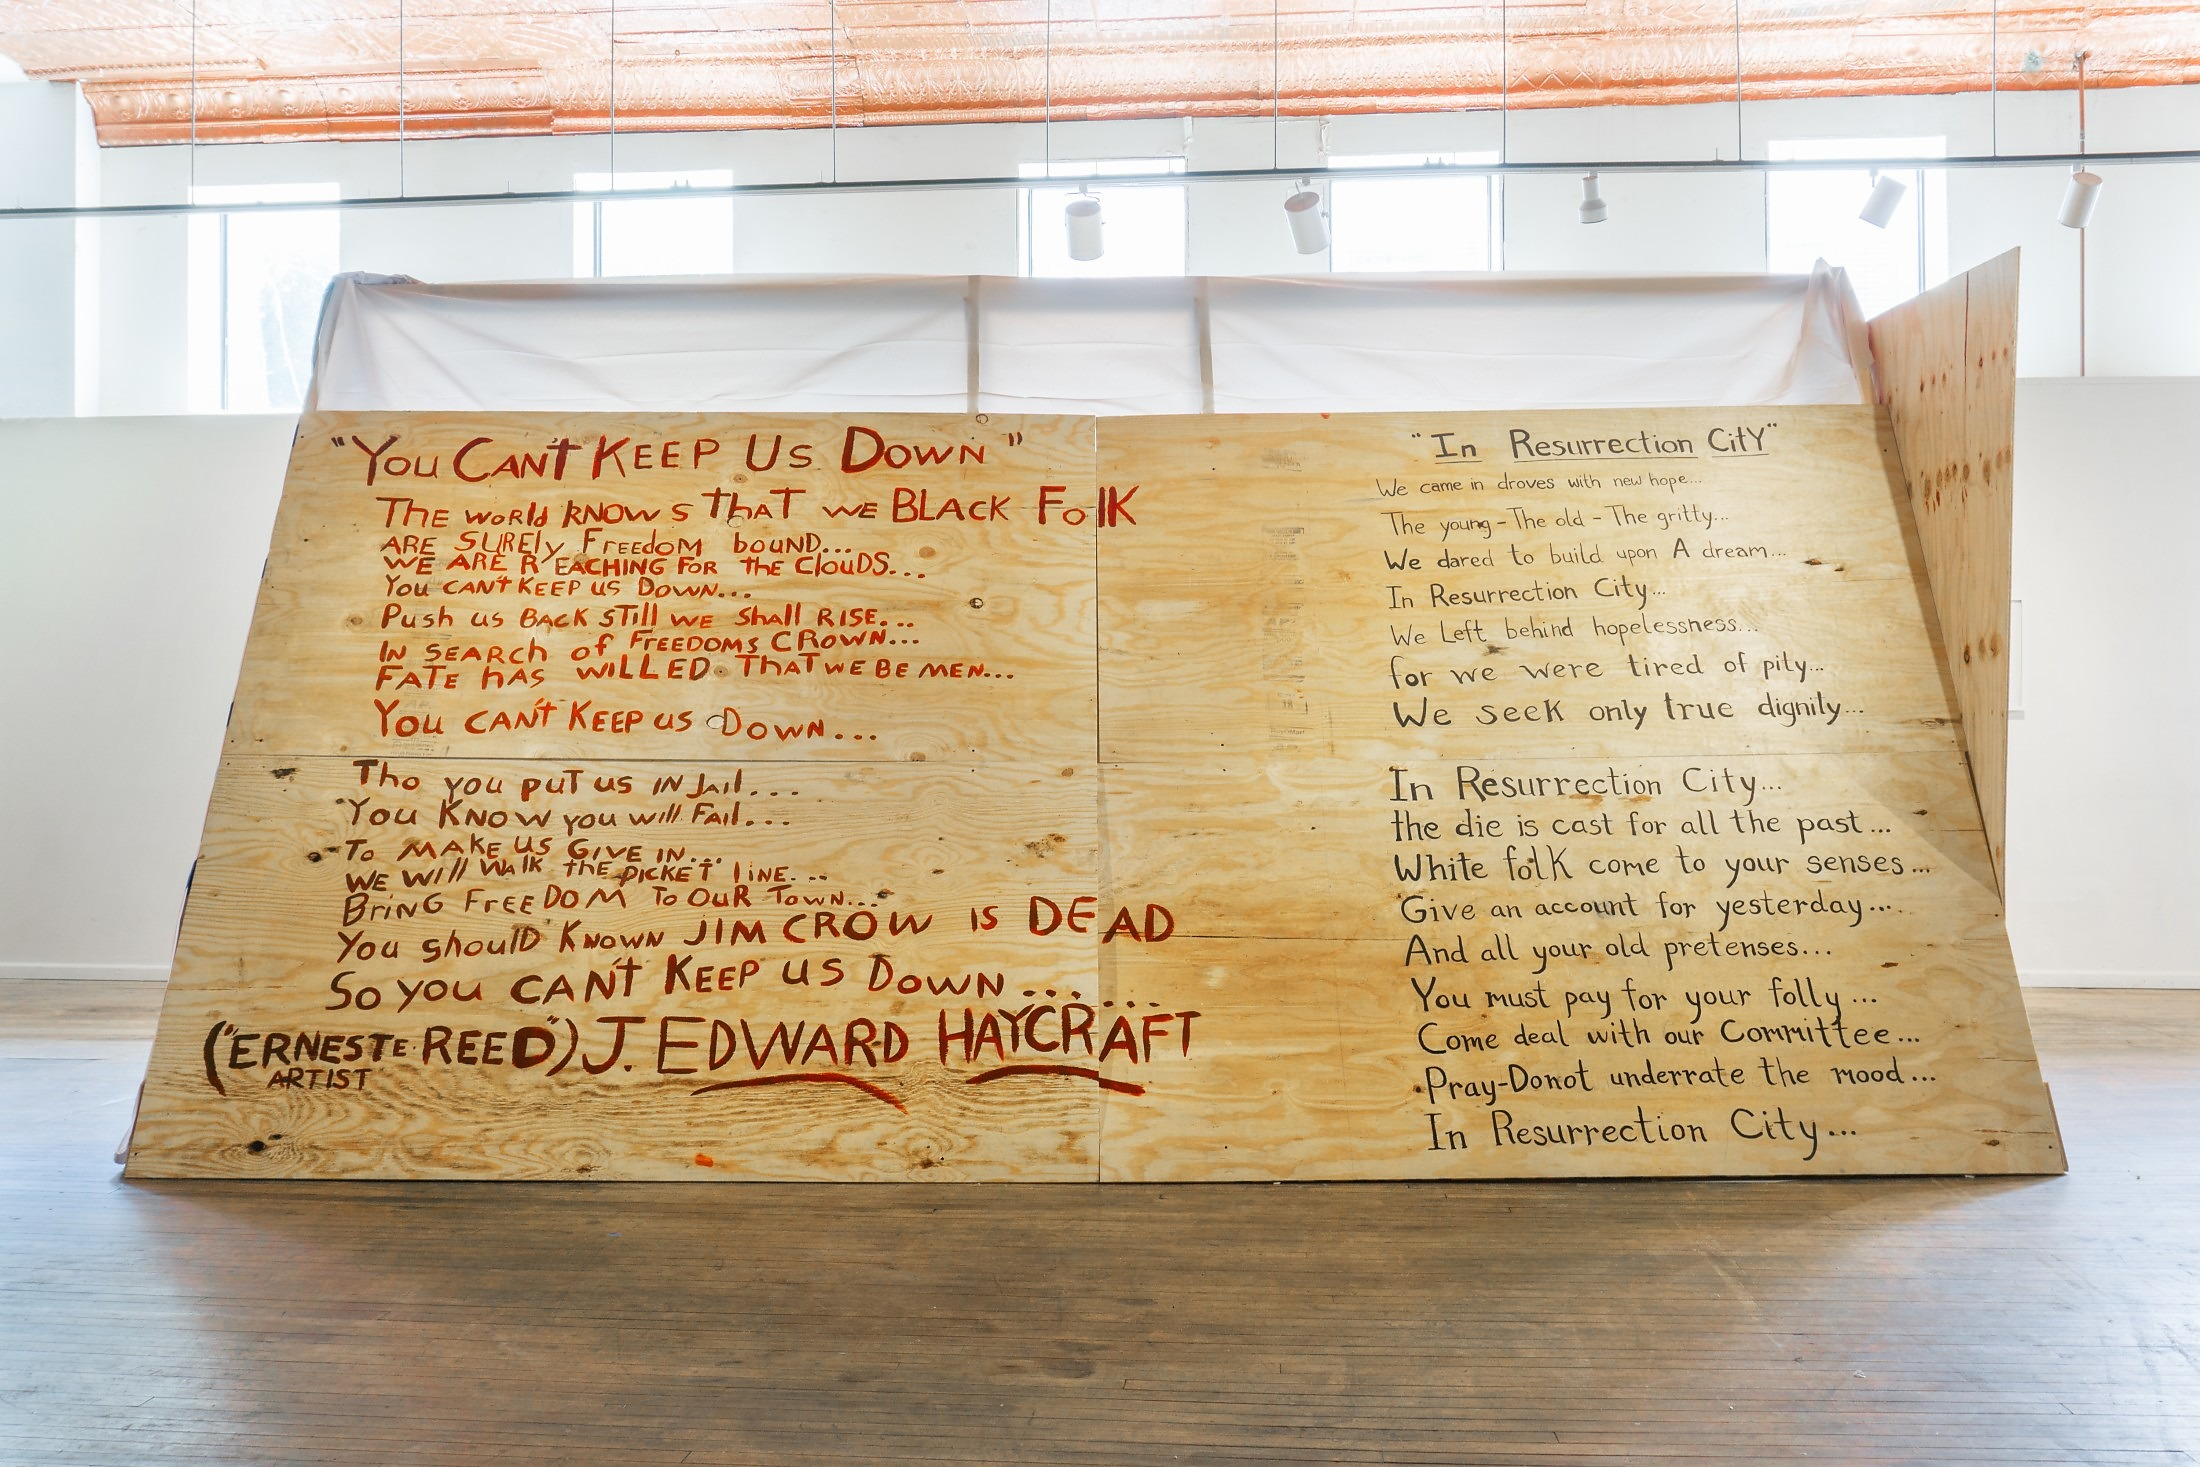 For Resurrection City 10x16x10′ Plywood, utility fabric, blanket, 1968 political literature library, paint, plastic 2018